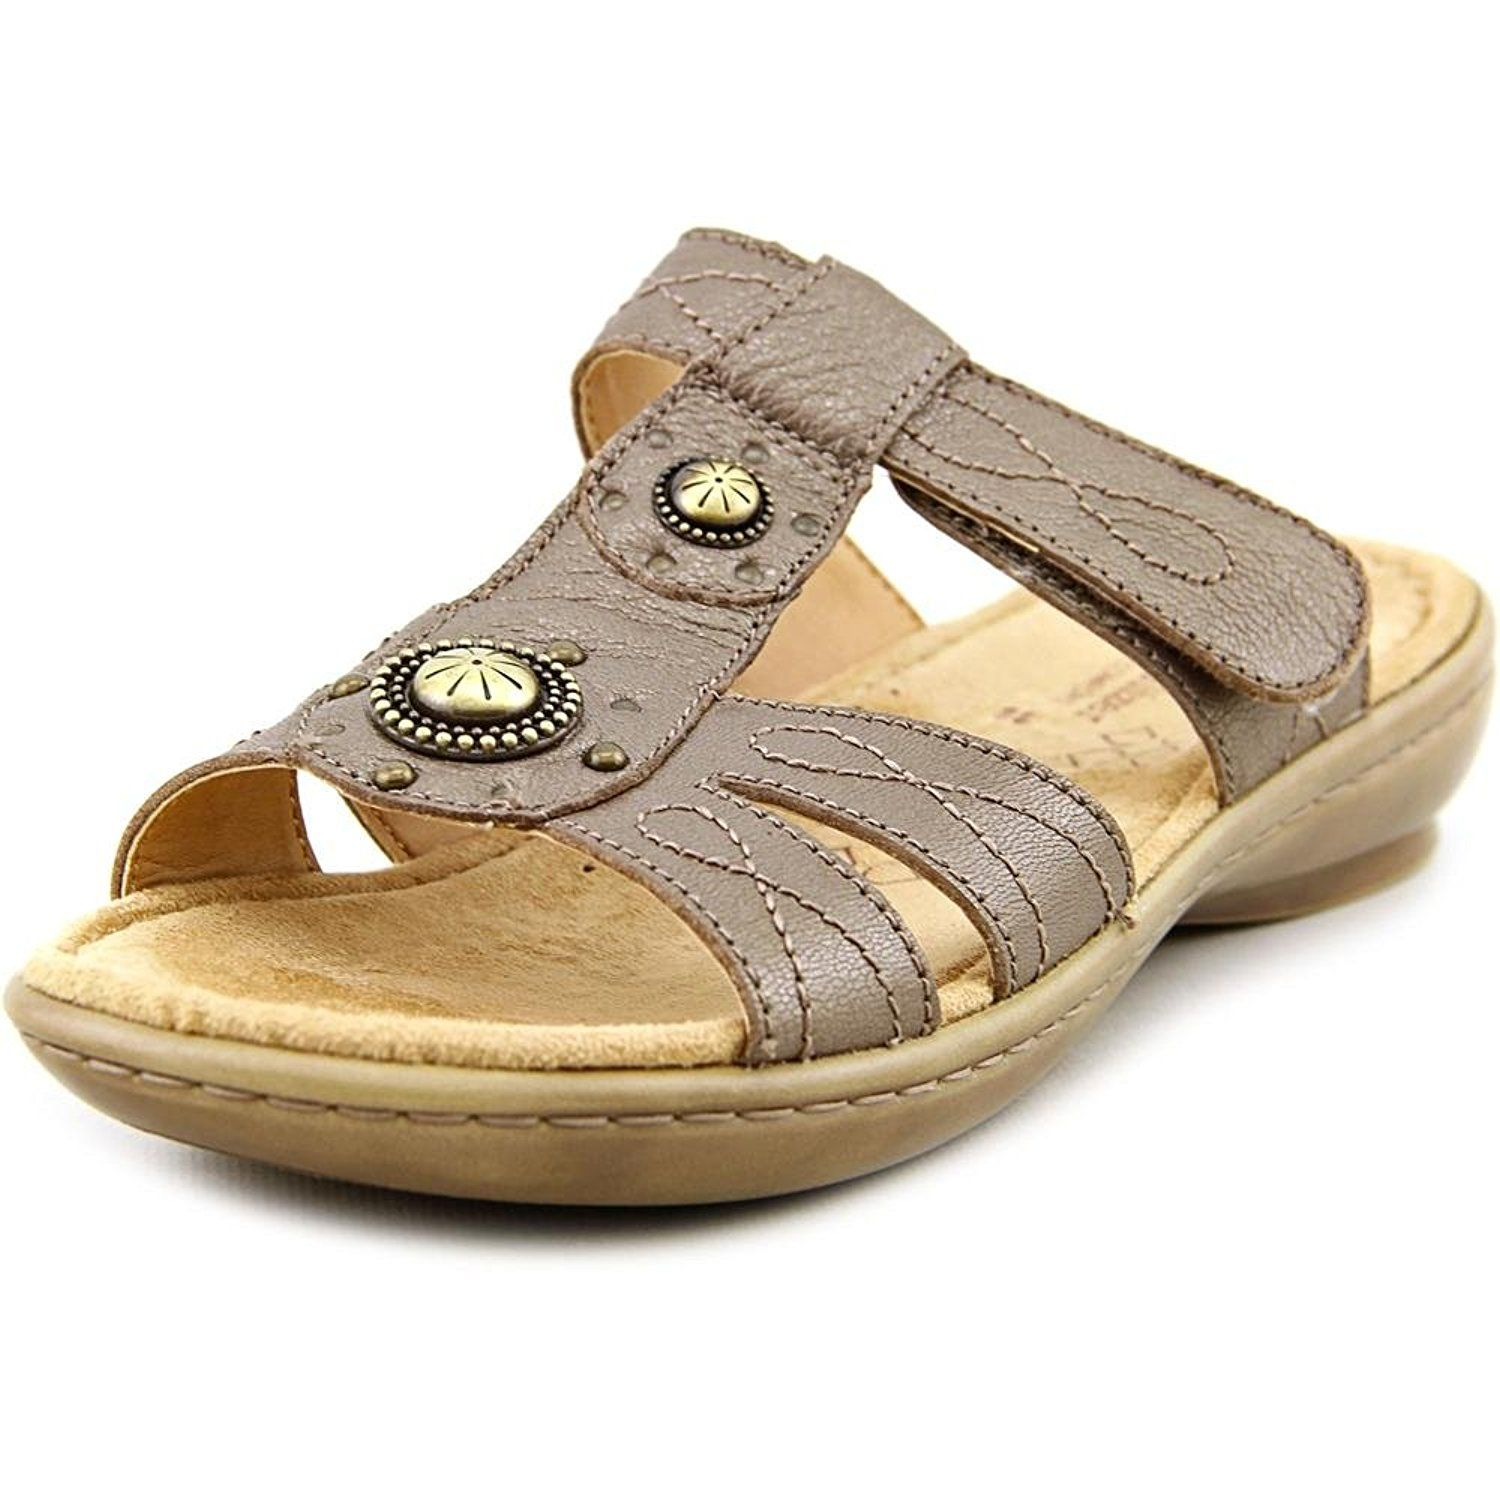 cfe49ecac387 Naturalizer Women s Journie Gladiator Sandal     Amazing product just a  click away   Slides sandals